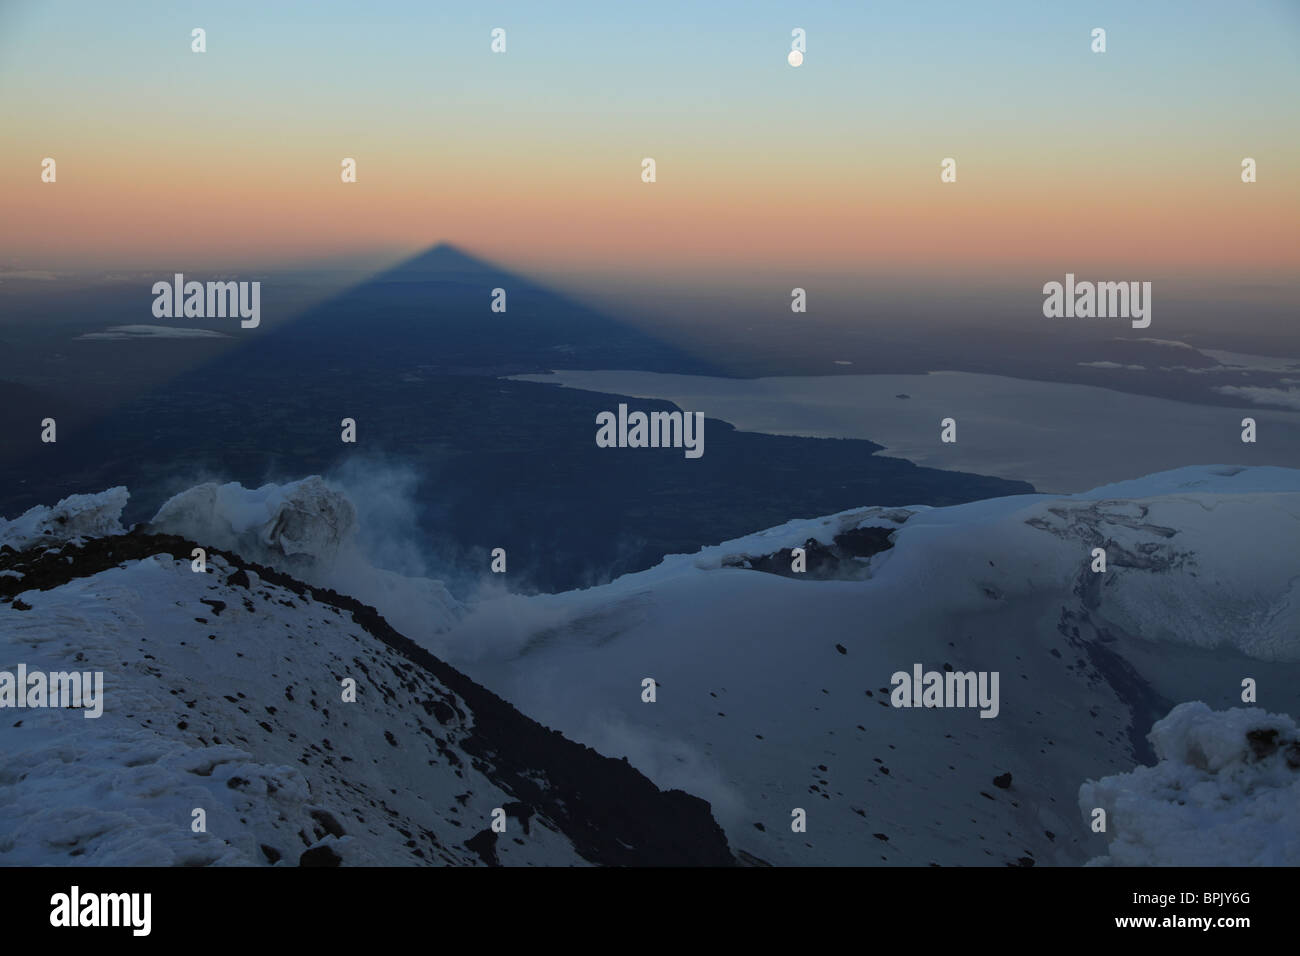 December 3, 2009 - Villarrica, summit view with shadow at sunrise, Araucania region, Chile. - Stock Image